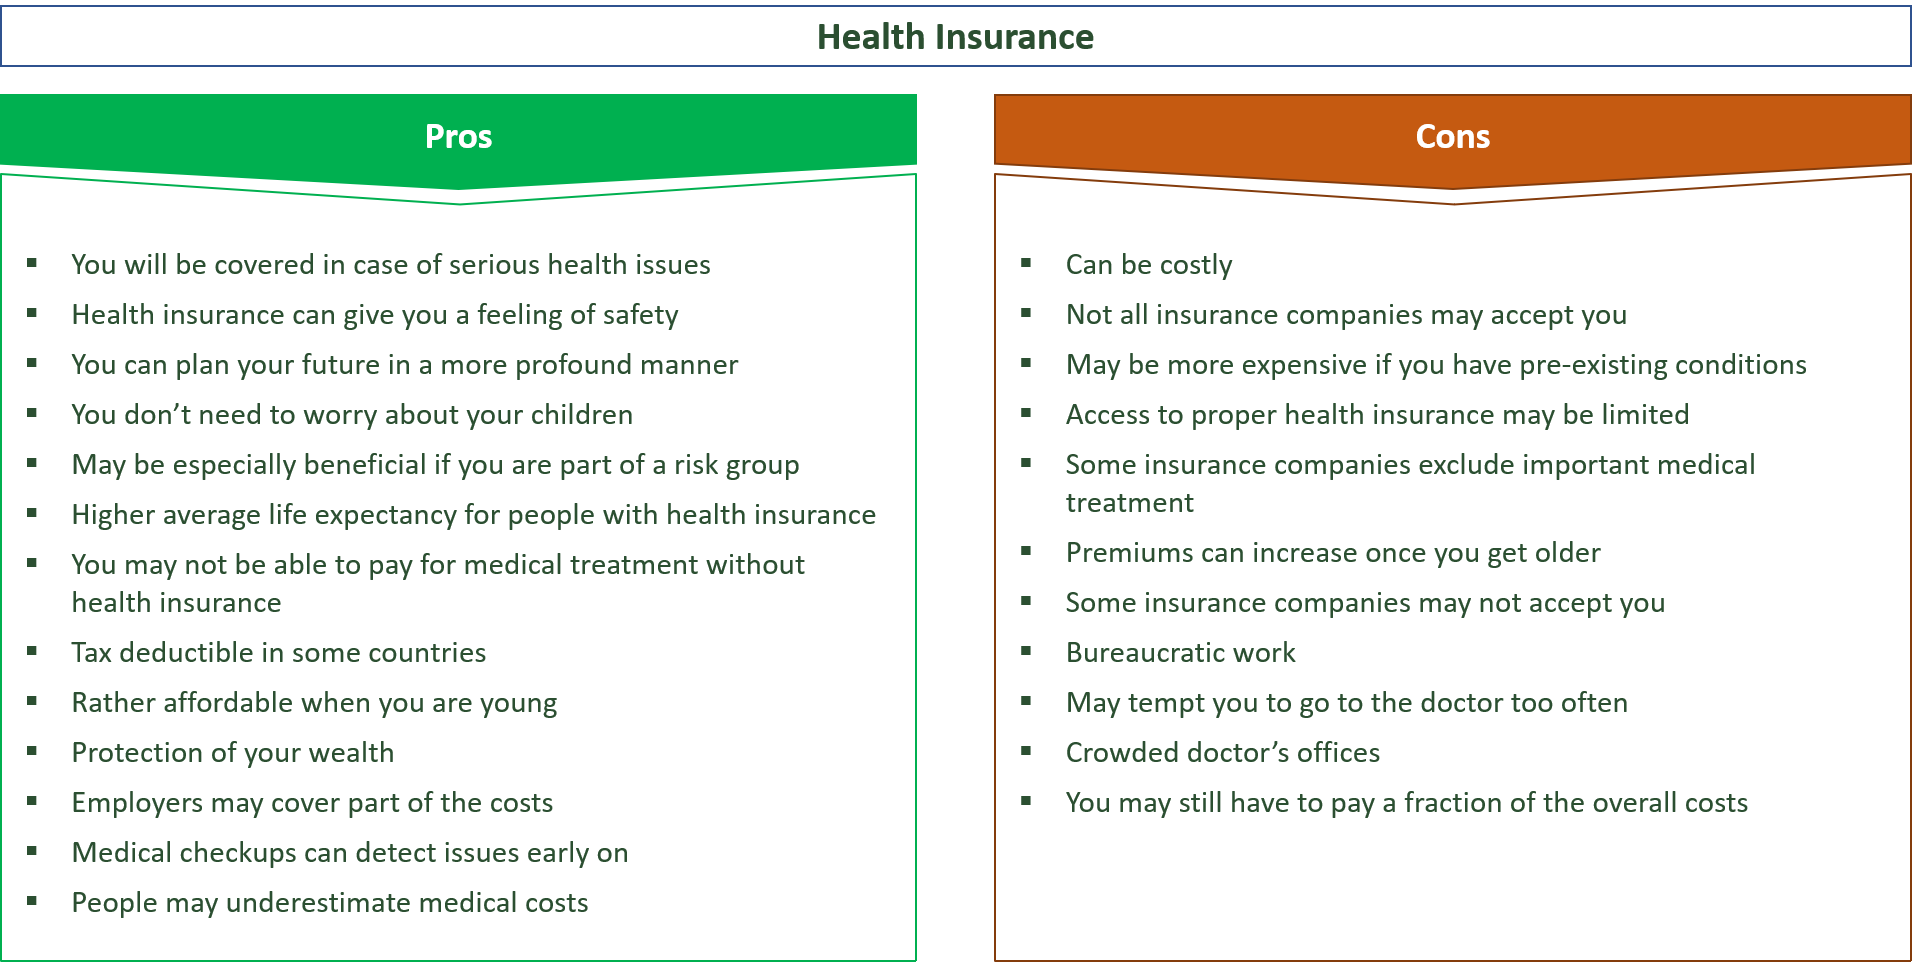 advantages and disadvantages of health insurance